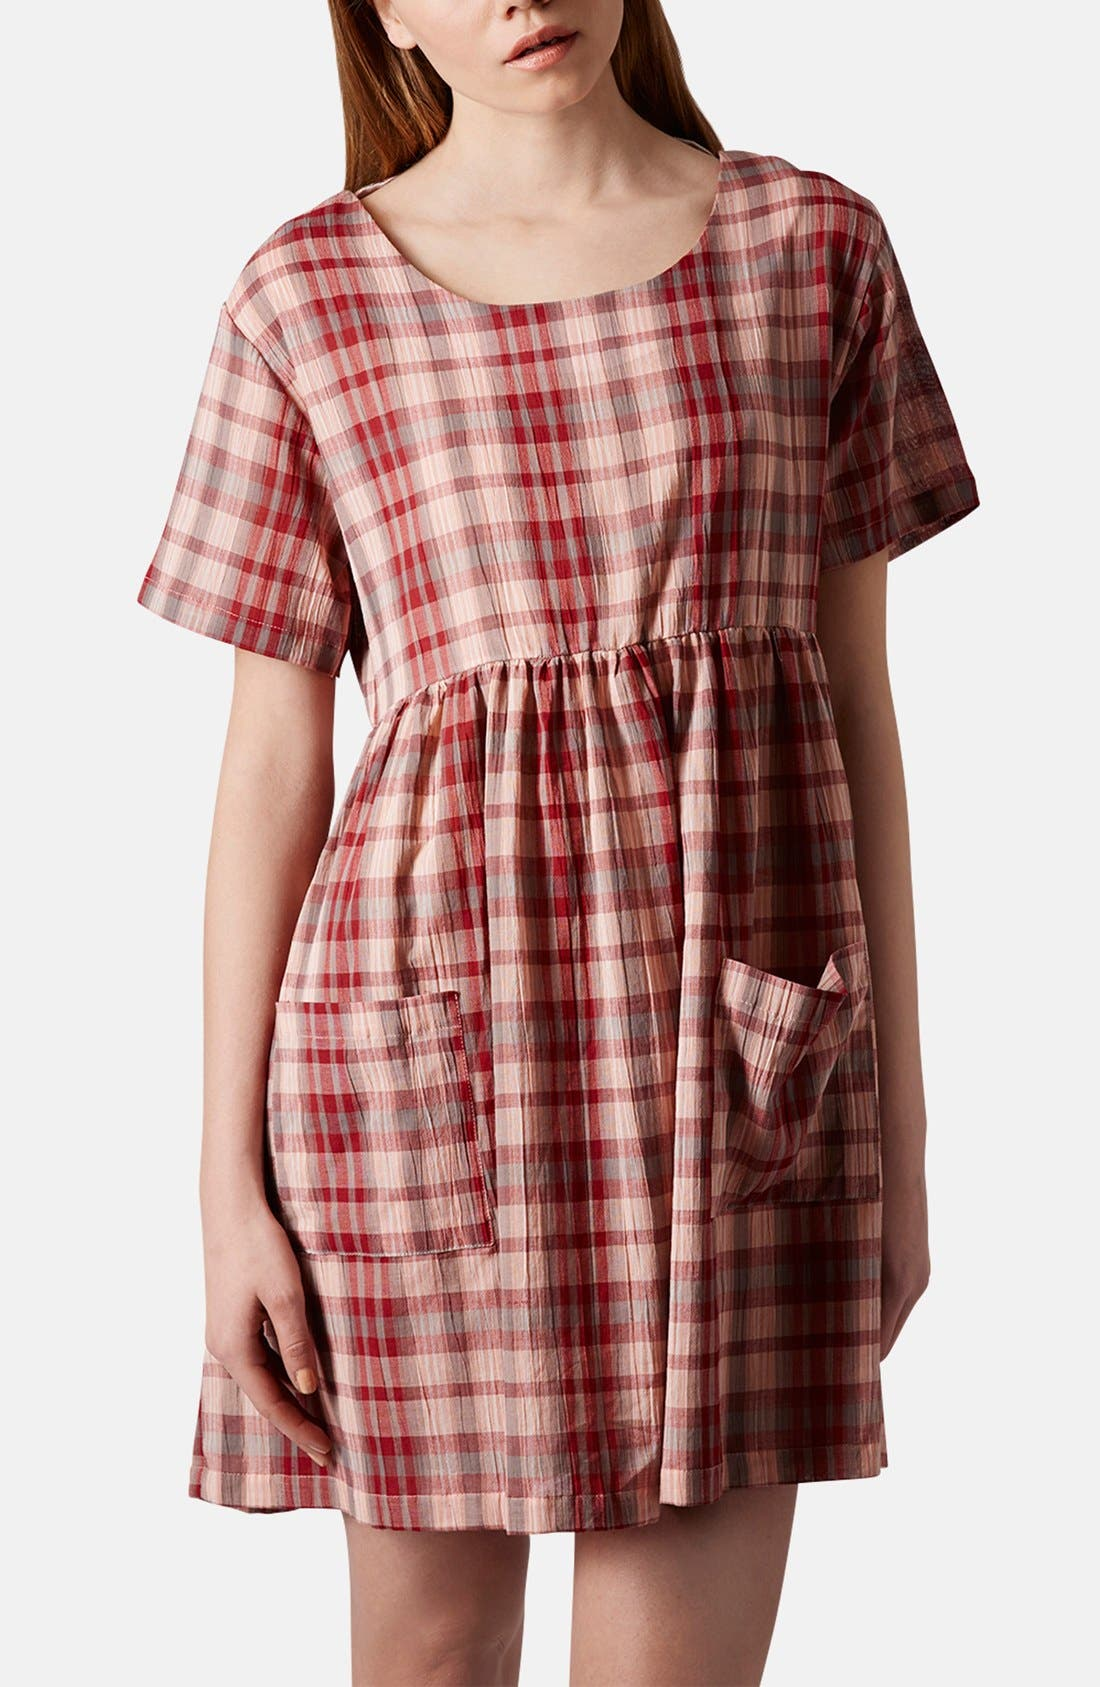 Alternate Image 1 Selected - Topshop Plaid Cotton Smock Dress